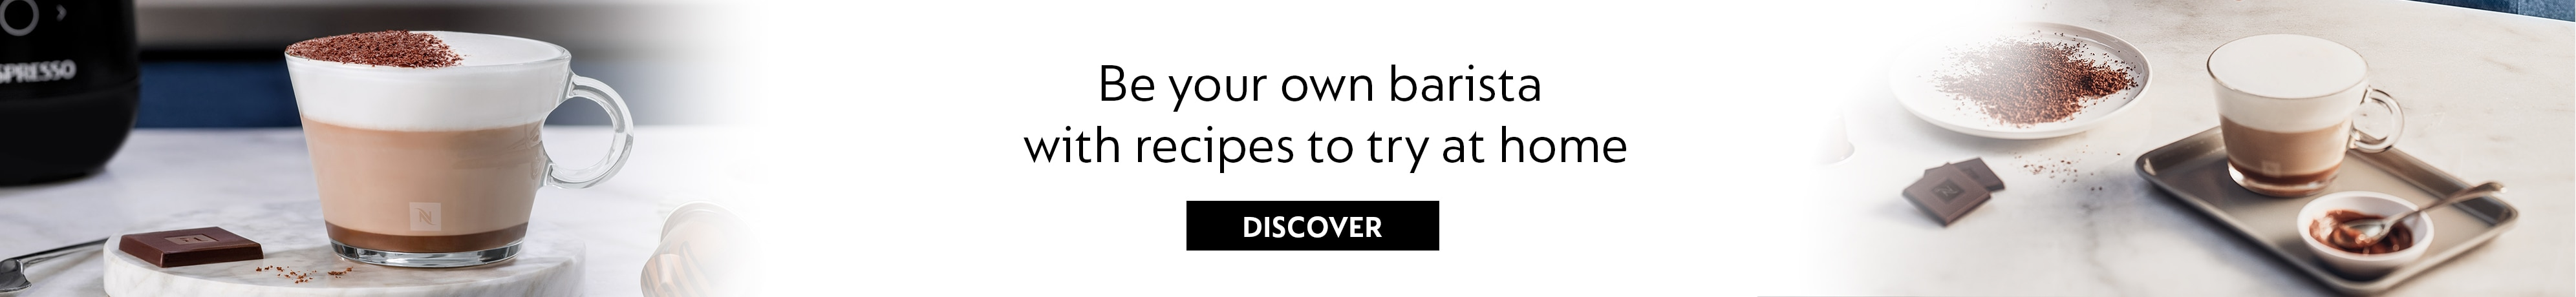 Be your own barista with recipes to try at home